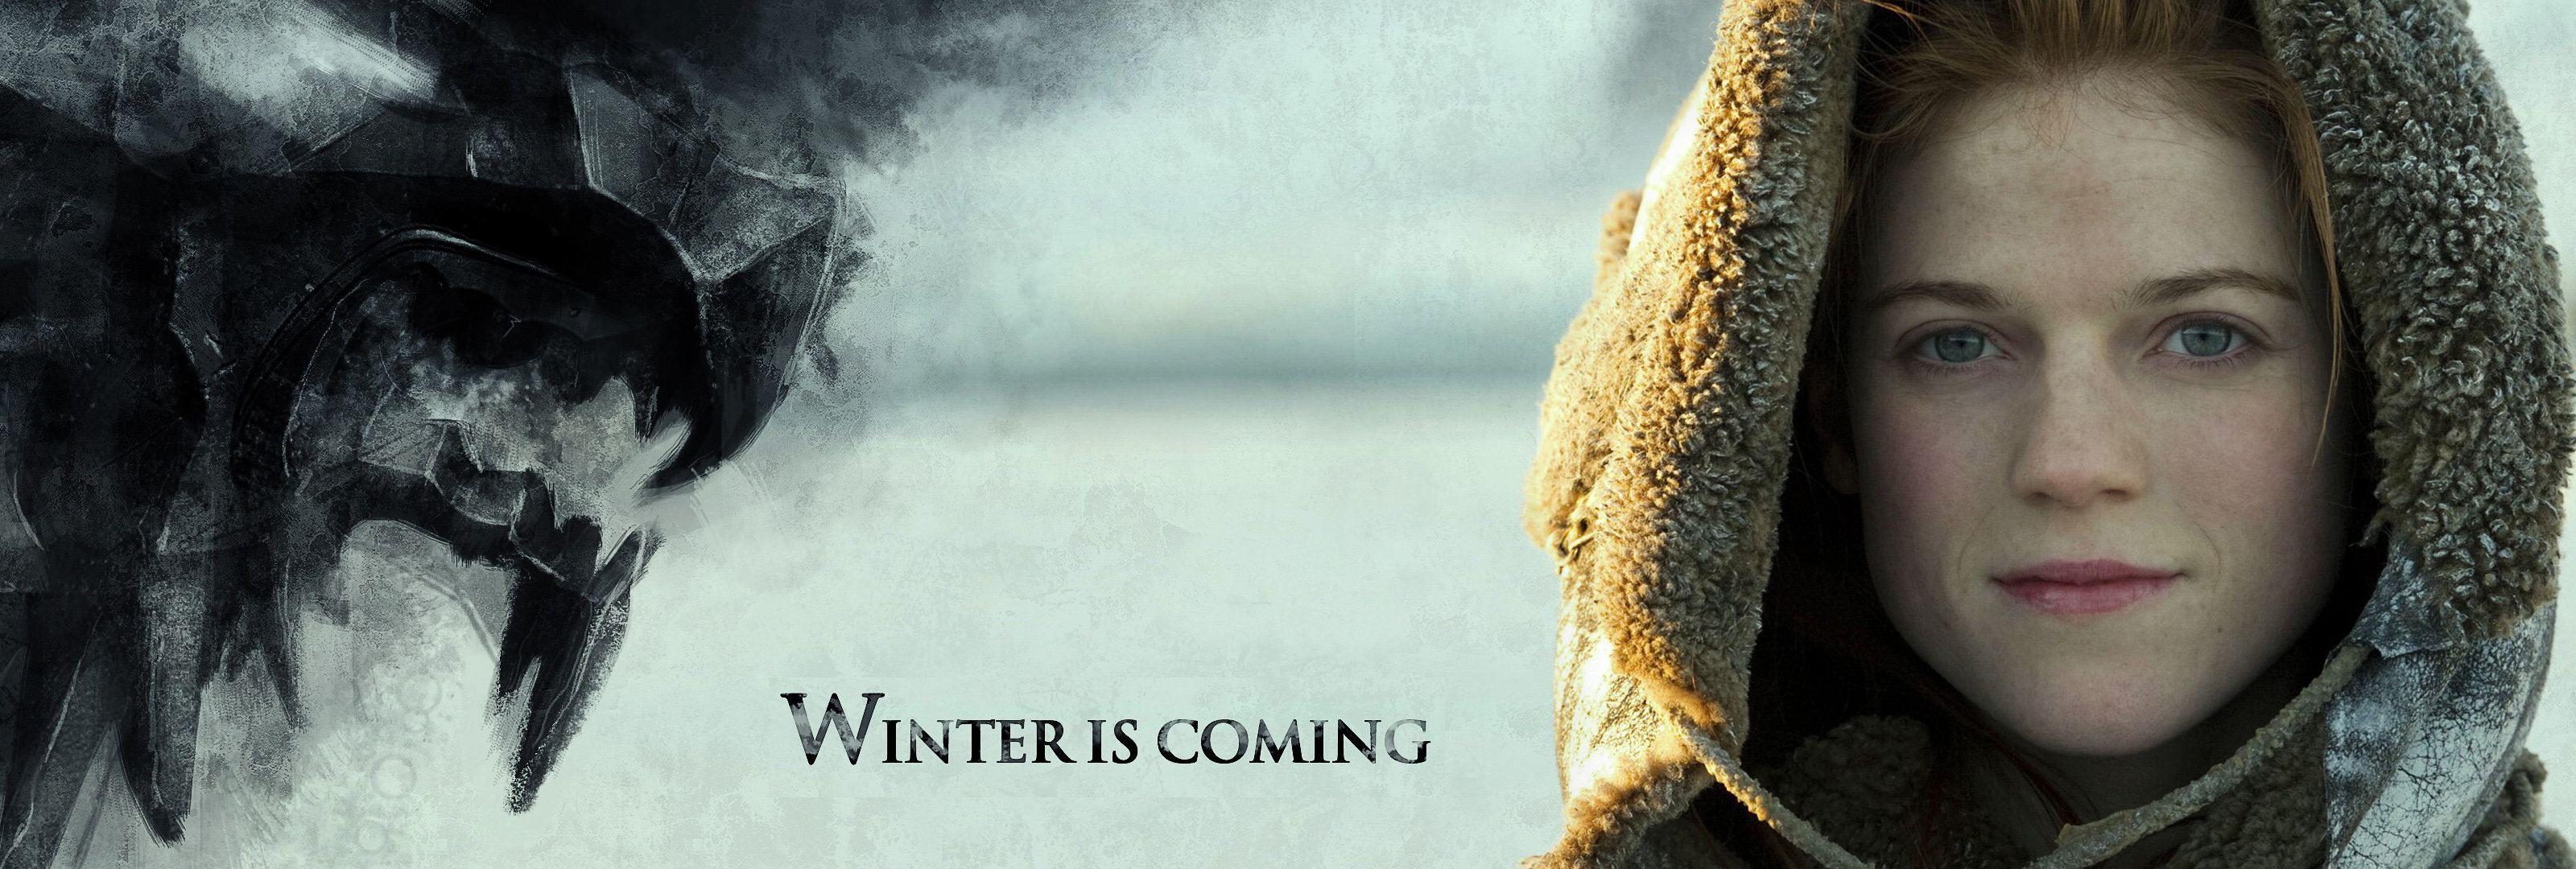 Free Download Game Of Thrones Background ID382800 Hd 3200x1080 For Computer